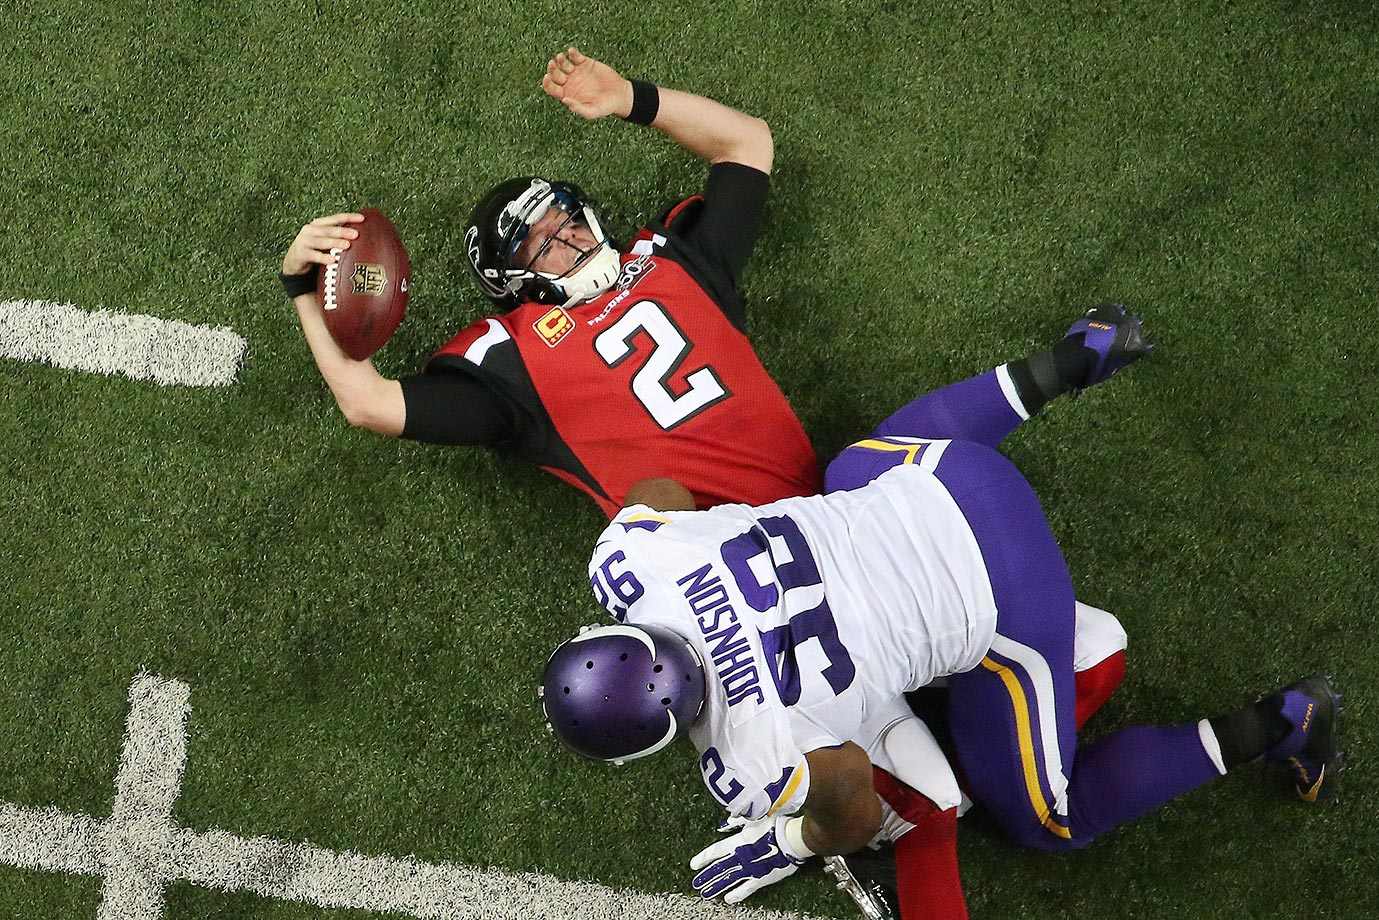 Matt Ryan of the Atlanta Falcons after being sacked by the Minnesota Vikings.